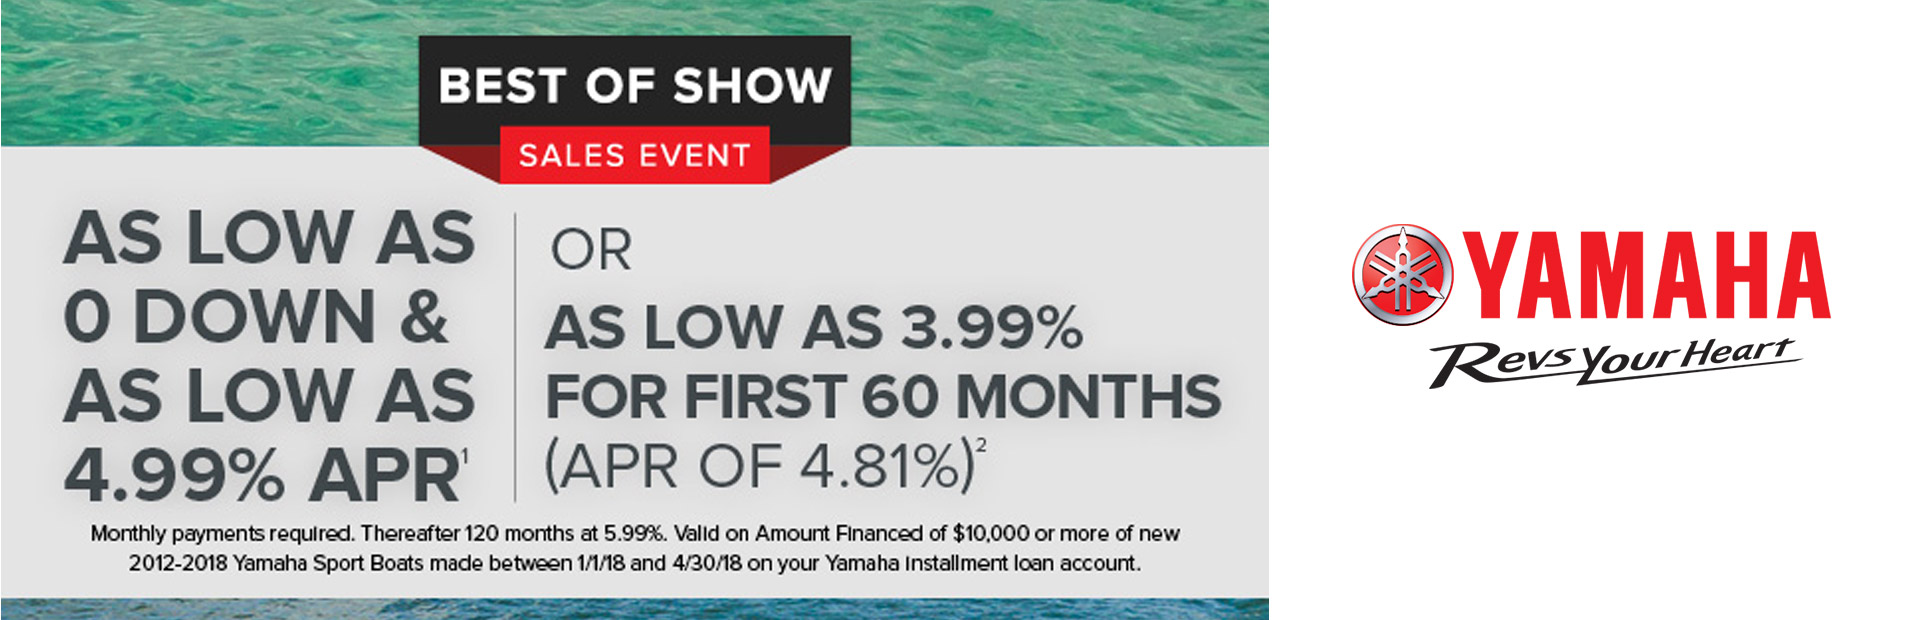 Yamaha: Best of Show Sales Event